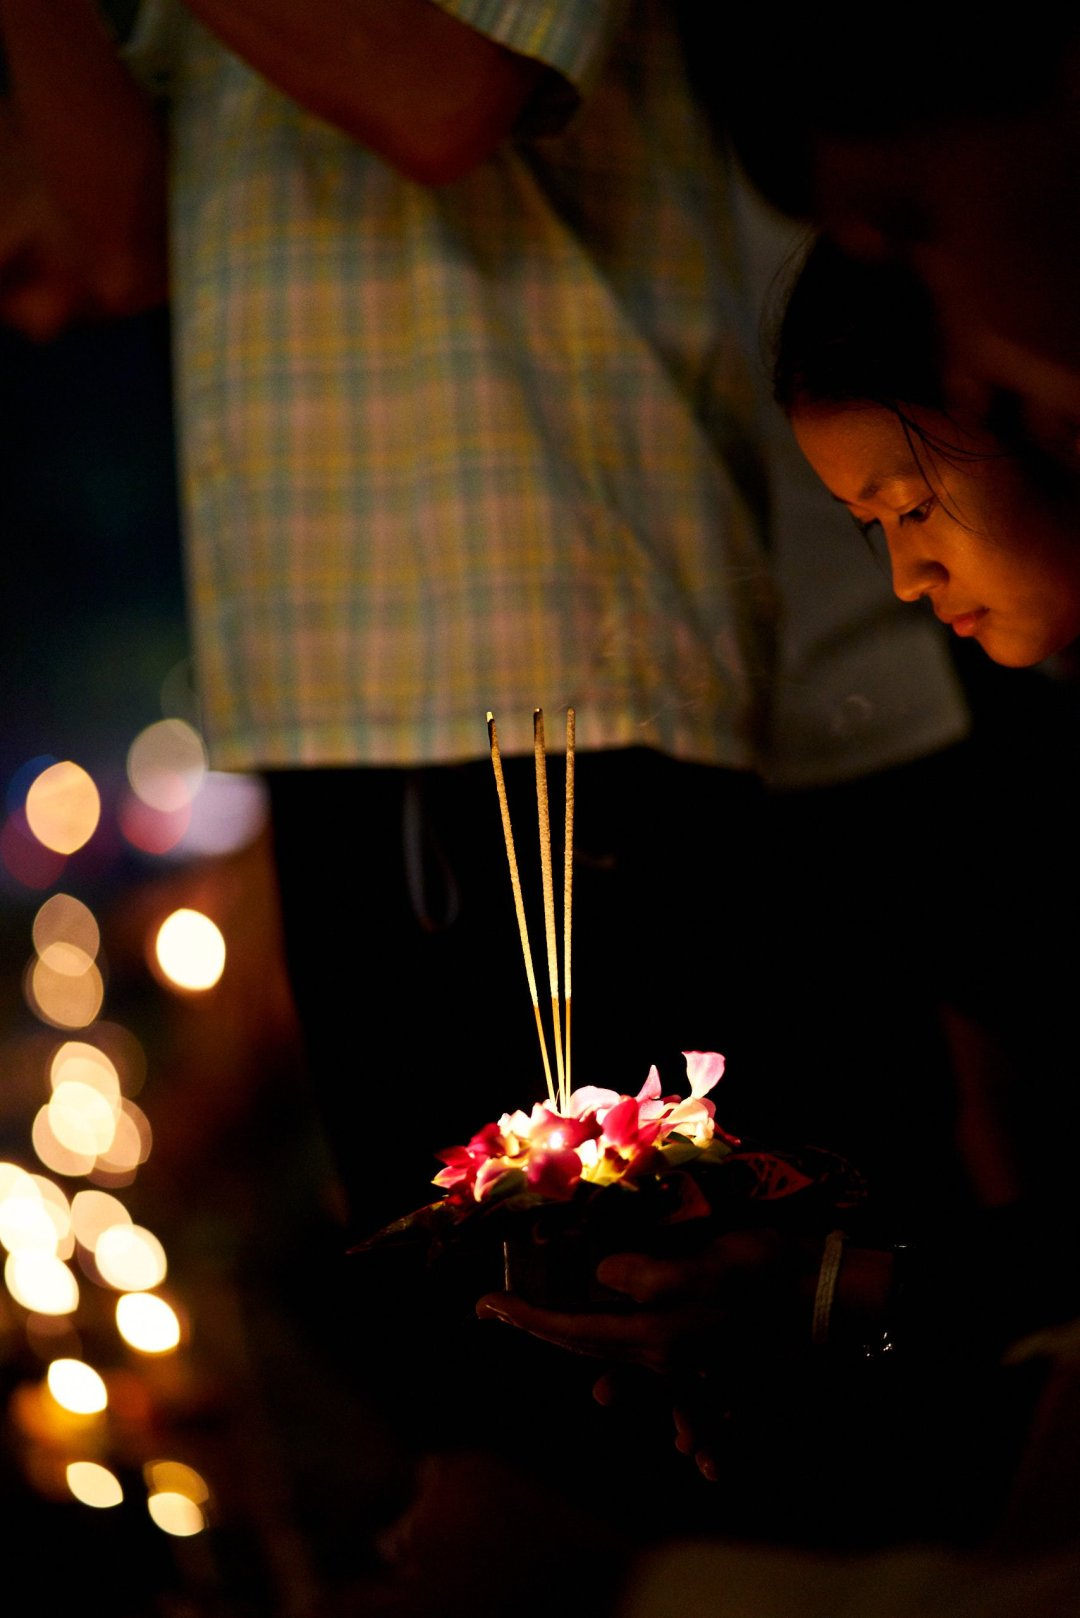 in Chiang Mai, Thailand during the Loi Krathong festival on November 11, 2019 by photographer Bryon Lippincott